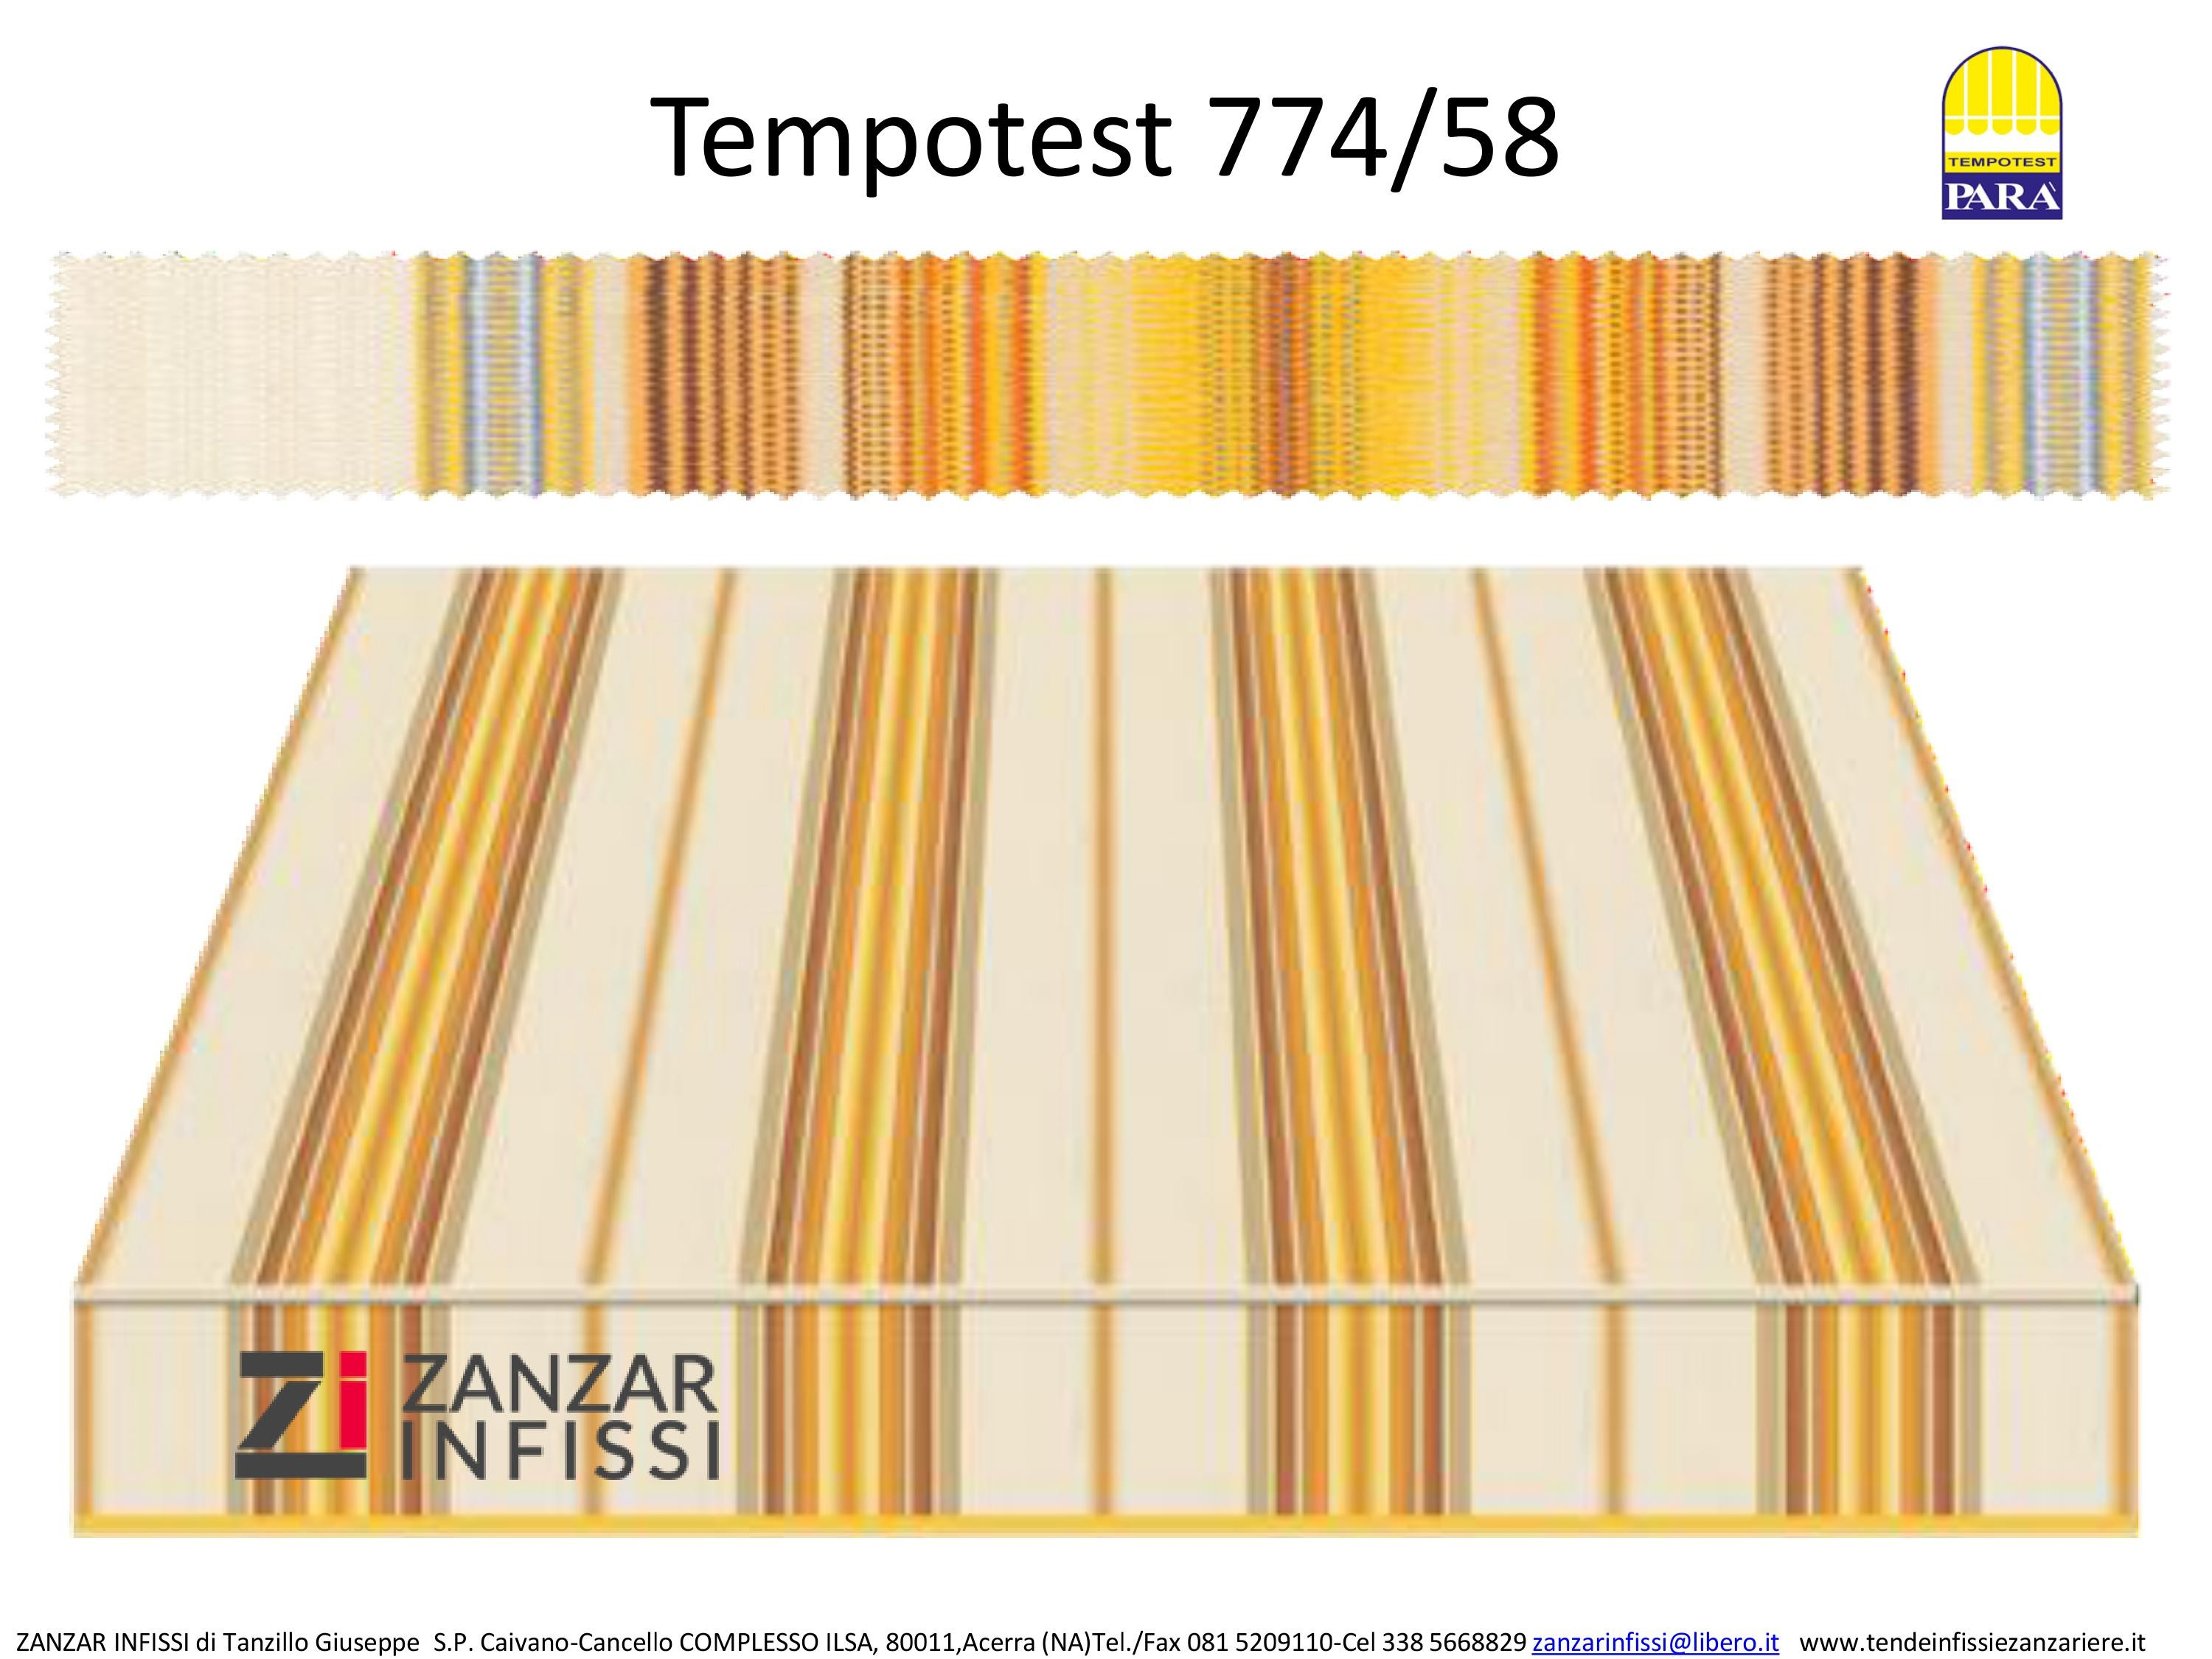 Tempotest 774/58